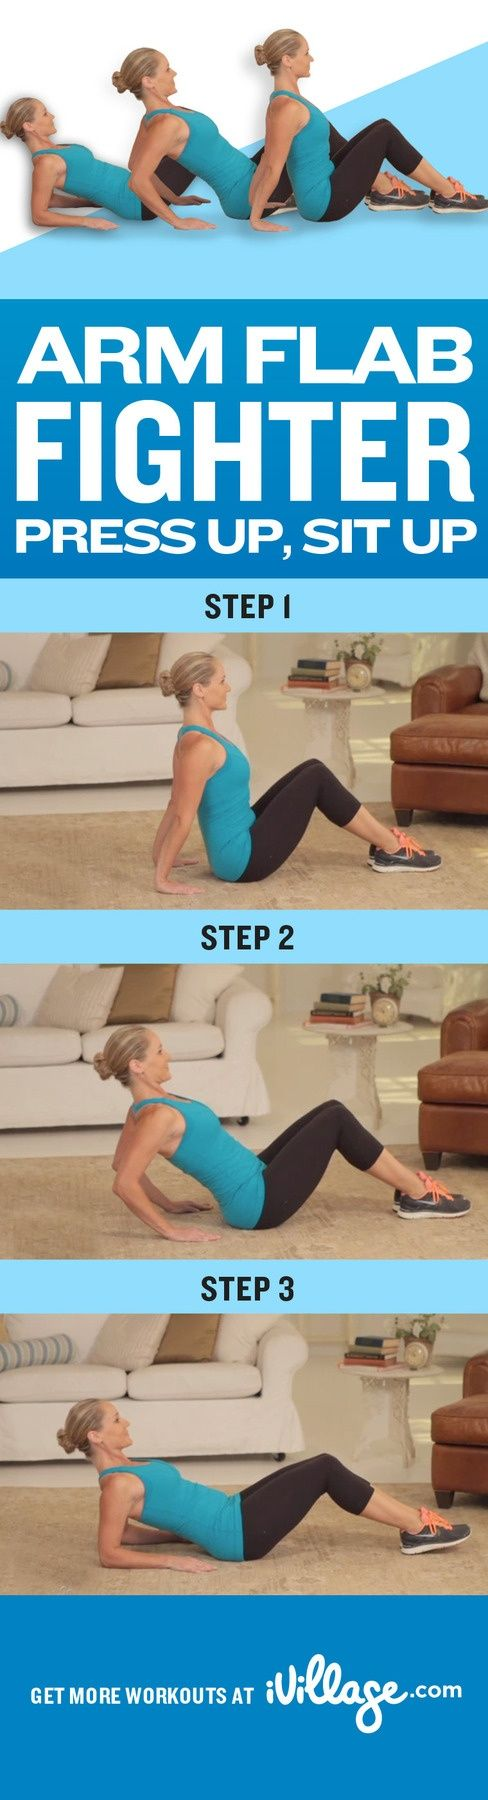 Simple Exercises to Tone Your Arms